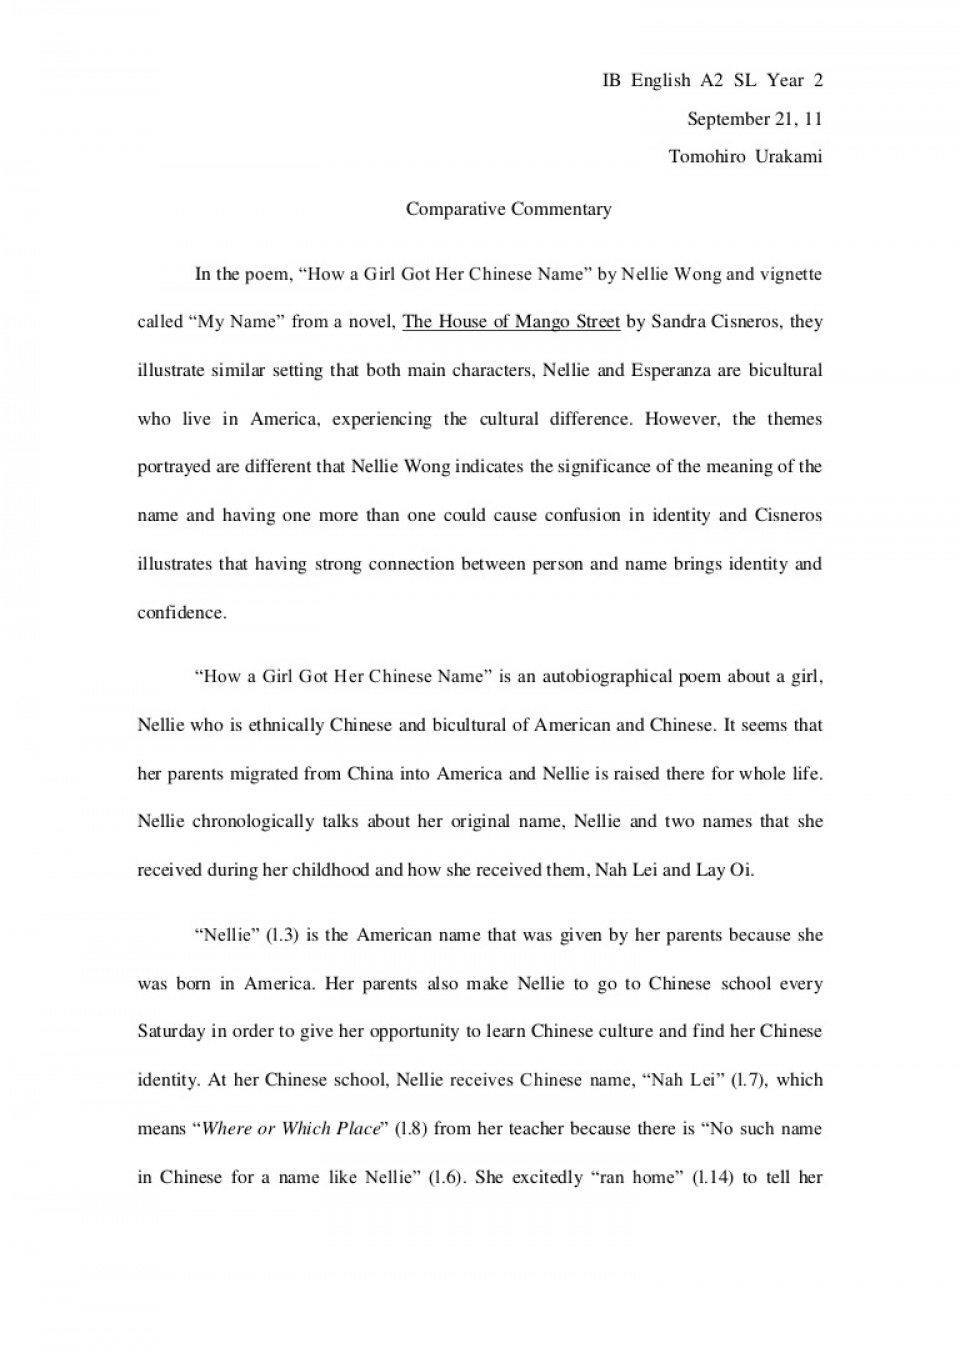 008 Compare And Contrast Essays Comparativeessaydraft Phpapp02 Thumbnail Magnificent Essay Examples Free For Elementary Students College Level 960